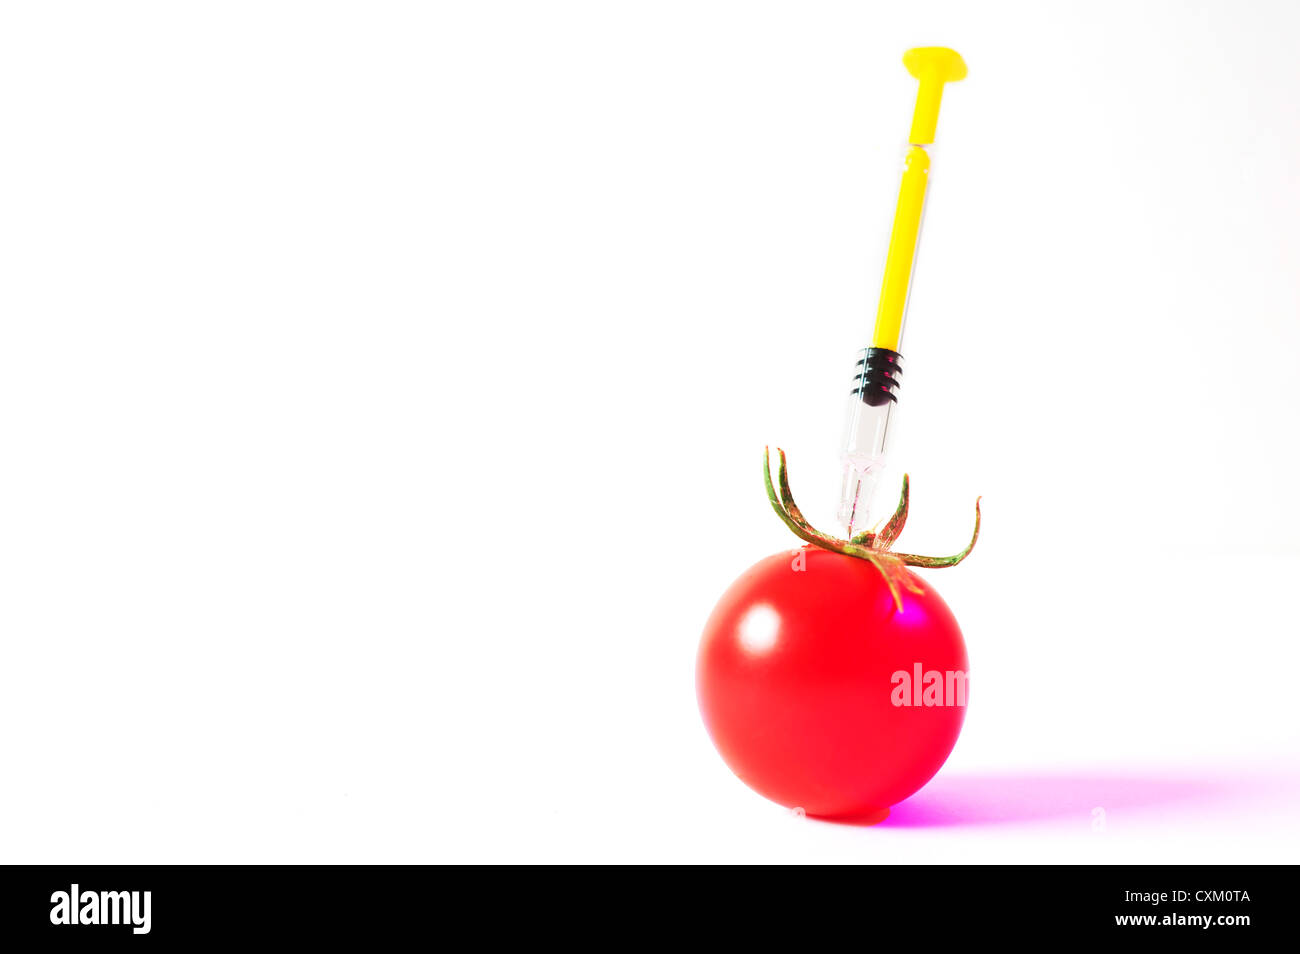 genetically modified food. a needle is injecting a fresh tomato - Stock Image